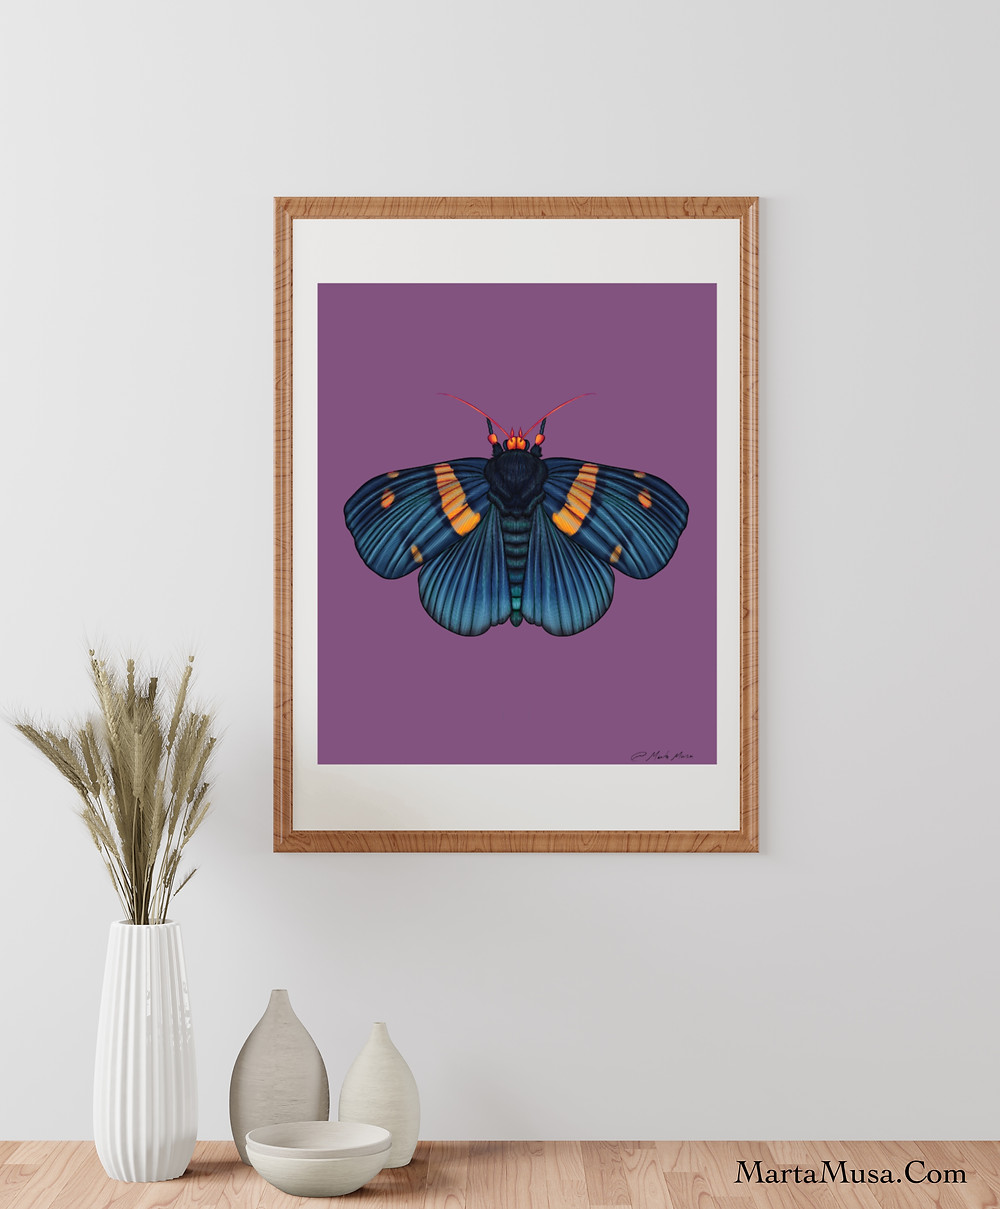 Contour line drawing of an African Peach Moth against a lavendar background.  The moth is shades of prussian blue on its wings and body with bands of yellow on its wings and a orange/yelow head and feelers